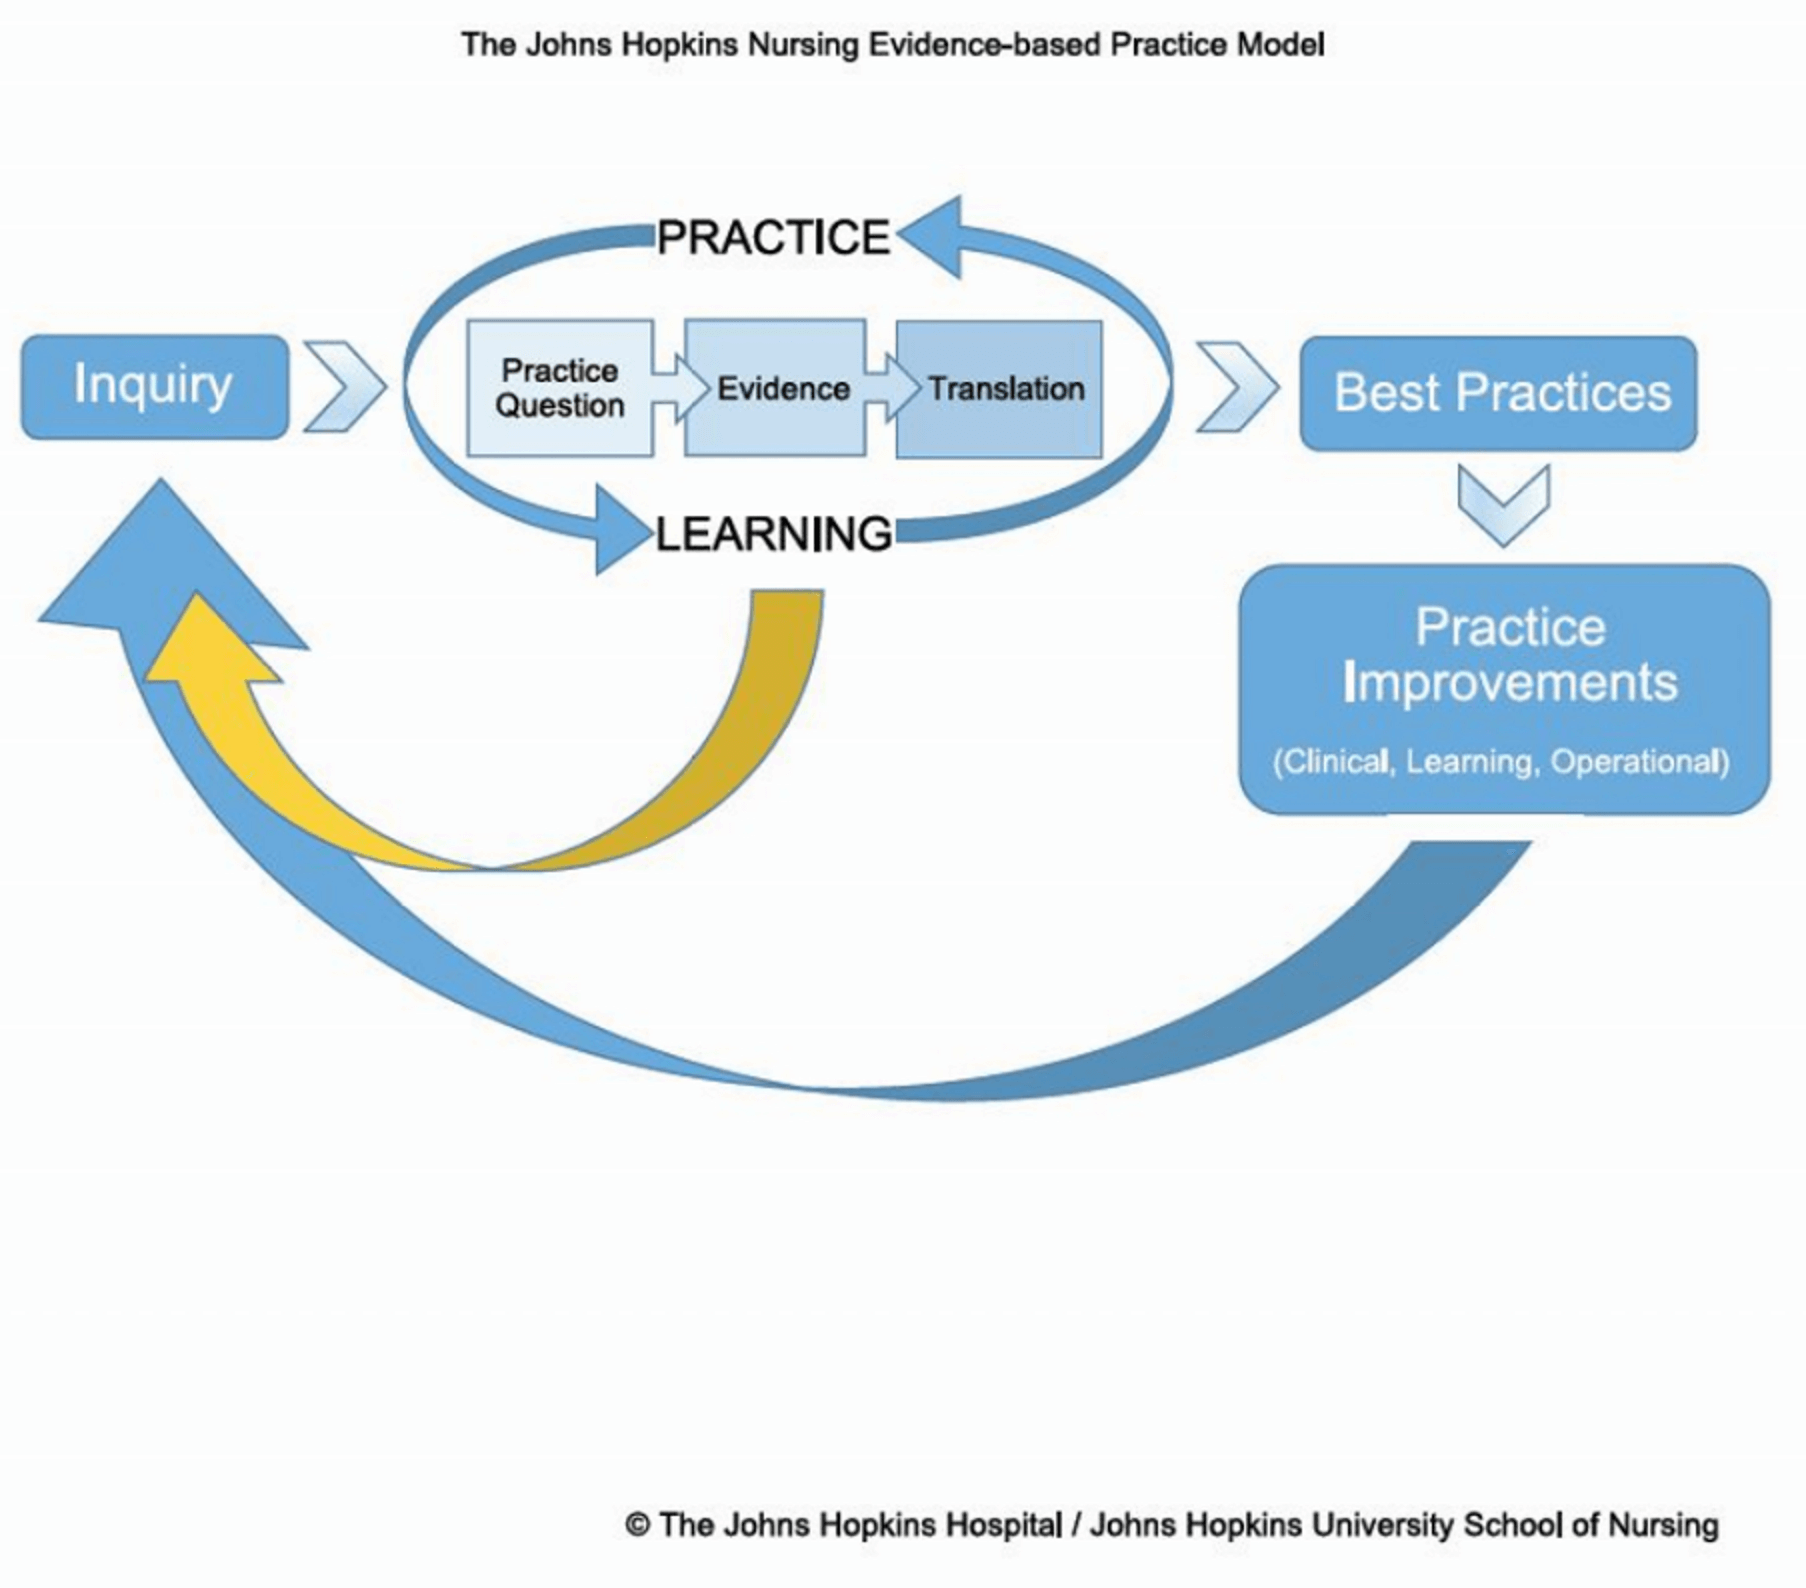 The Johns Hopkins EBP model progressing through inquiry, practice question, evidence, translation, best practices, and practice improvements. An arrow points from practice improvements to inquiry back at the beginning of the model, implying a cycle